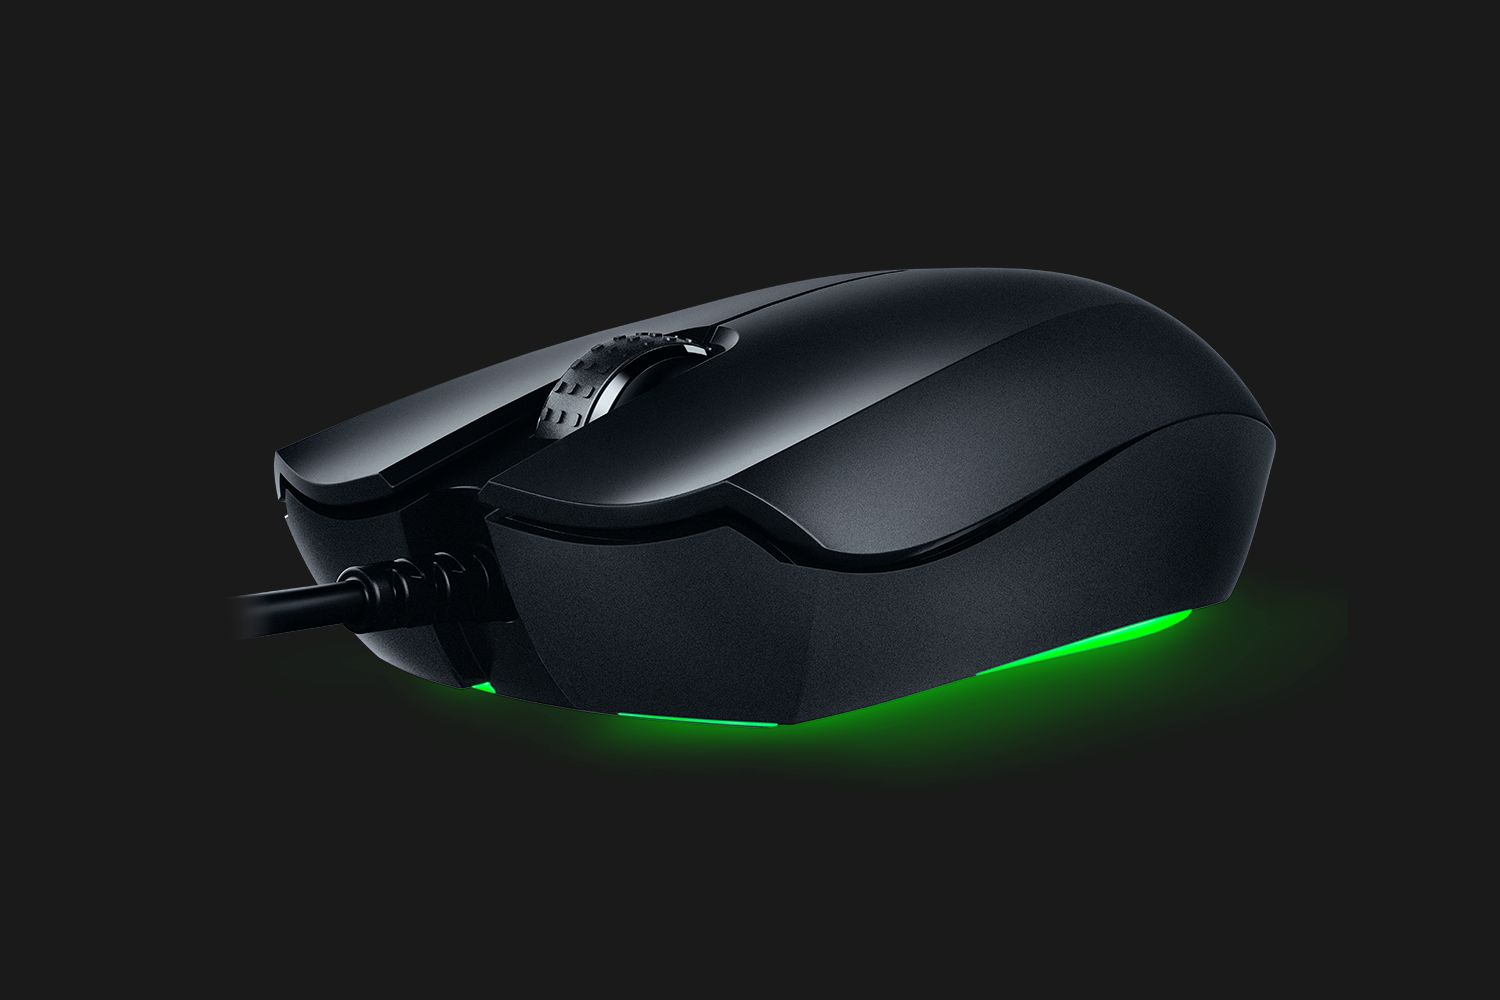 The missing feature — Razer Abyssus Essential review